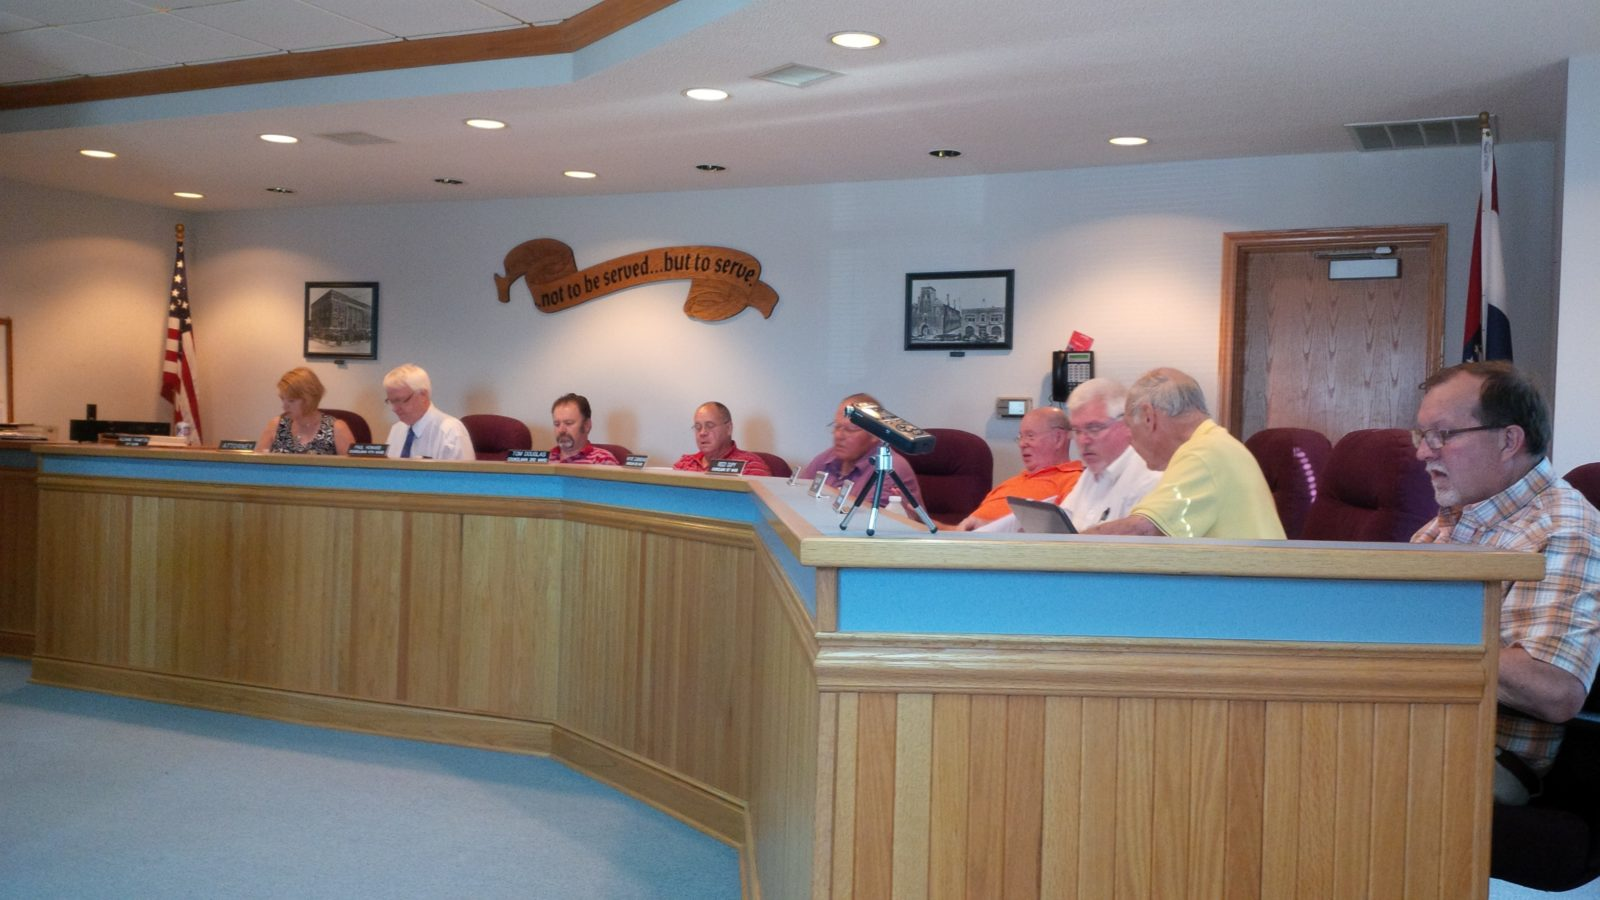 Chillicothe leaders have busy meeting agenda